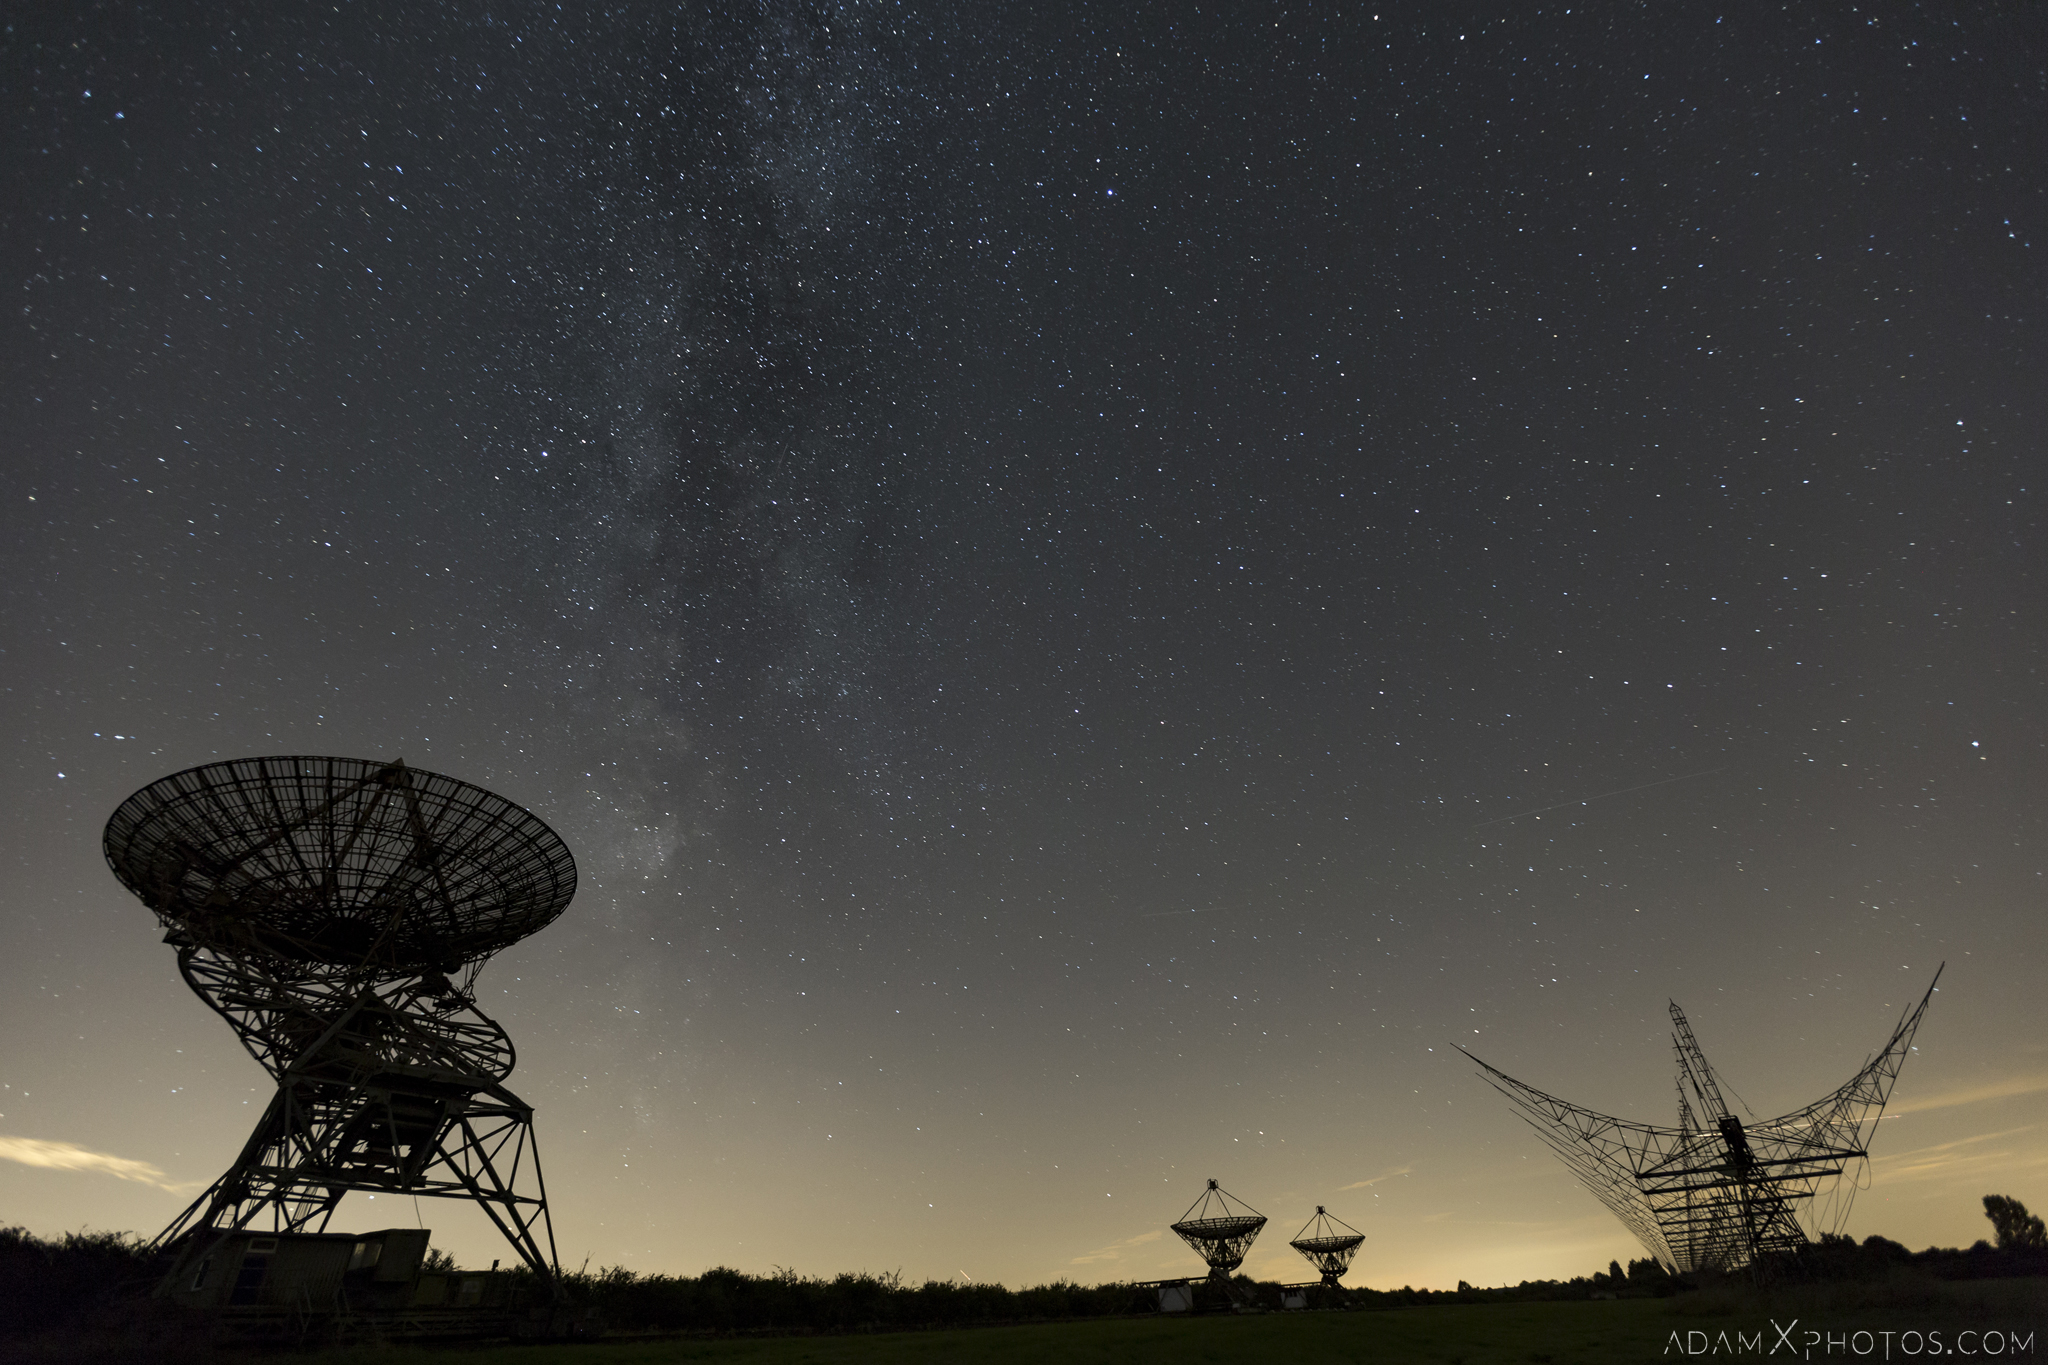 Satellite Antenna Antennae night photography night time milky way stars astrophotgraphy Mullard Radio Astronomy Observatory Cambridge UK Urbex Adam X Urban Exploration Access 2016 Abandoned decay lost forgotten derelict location haunting eerie